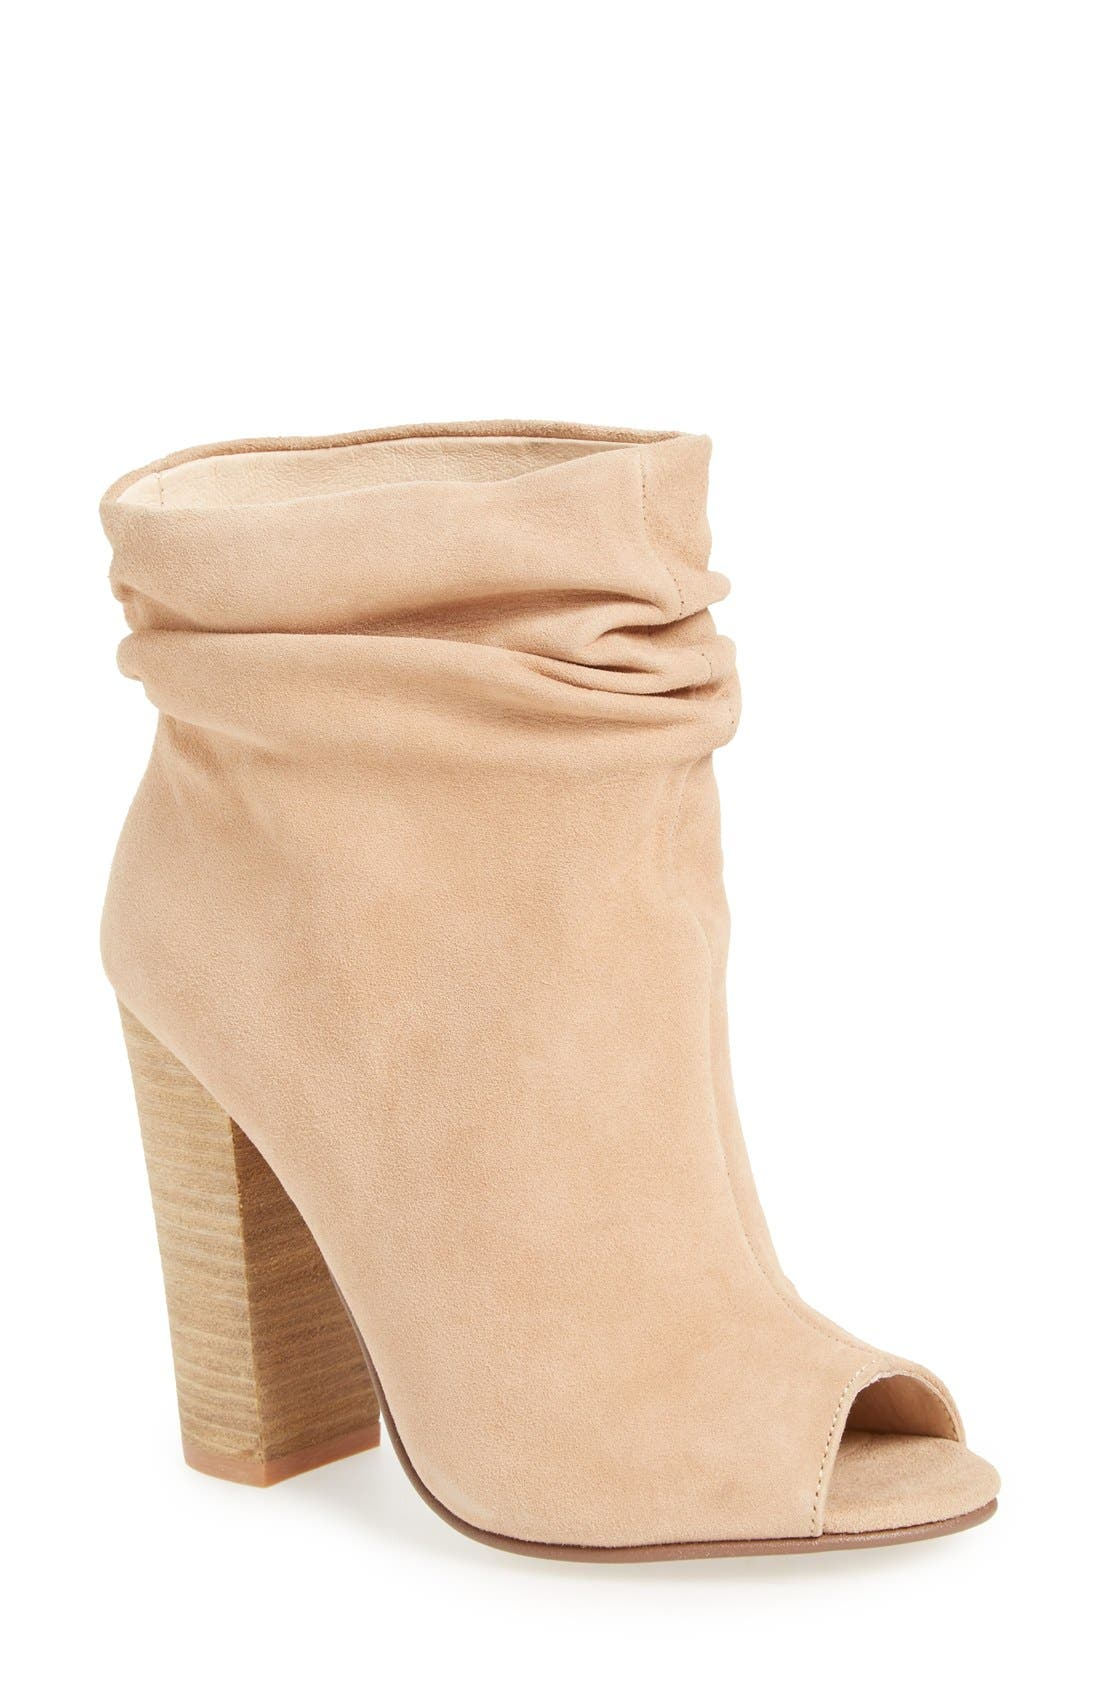 'Laurel' Peep Toe Bootie,                             Main thumbnail 1, color,                             New Nude